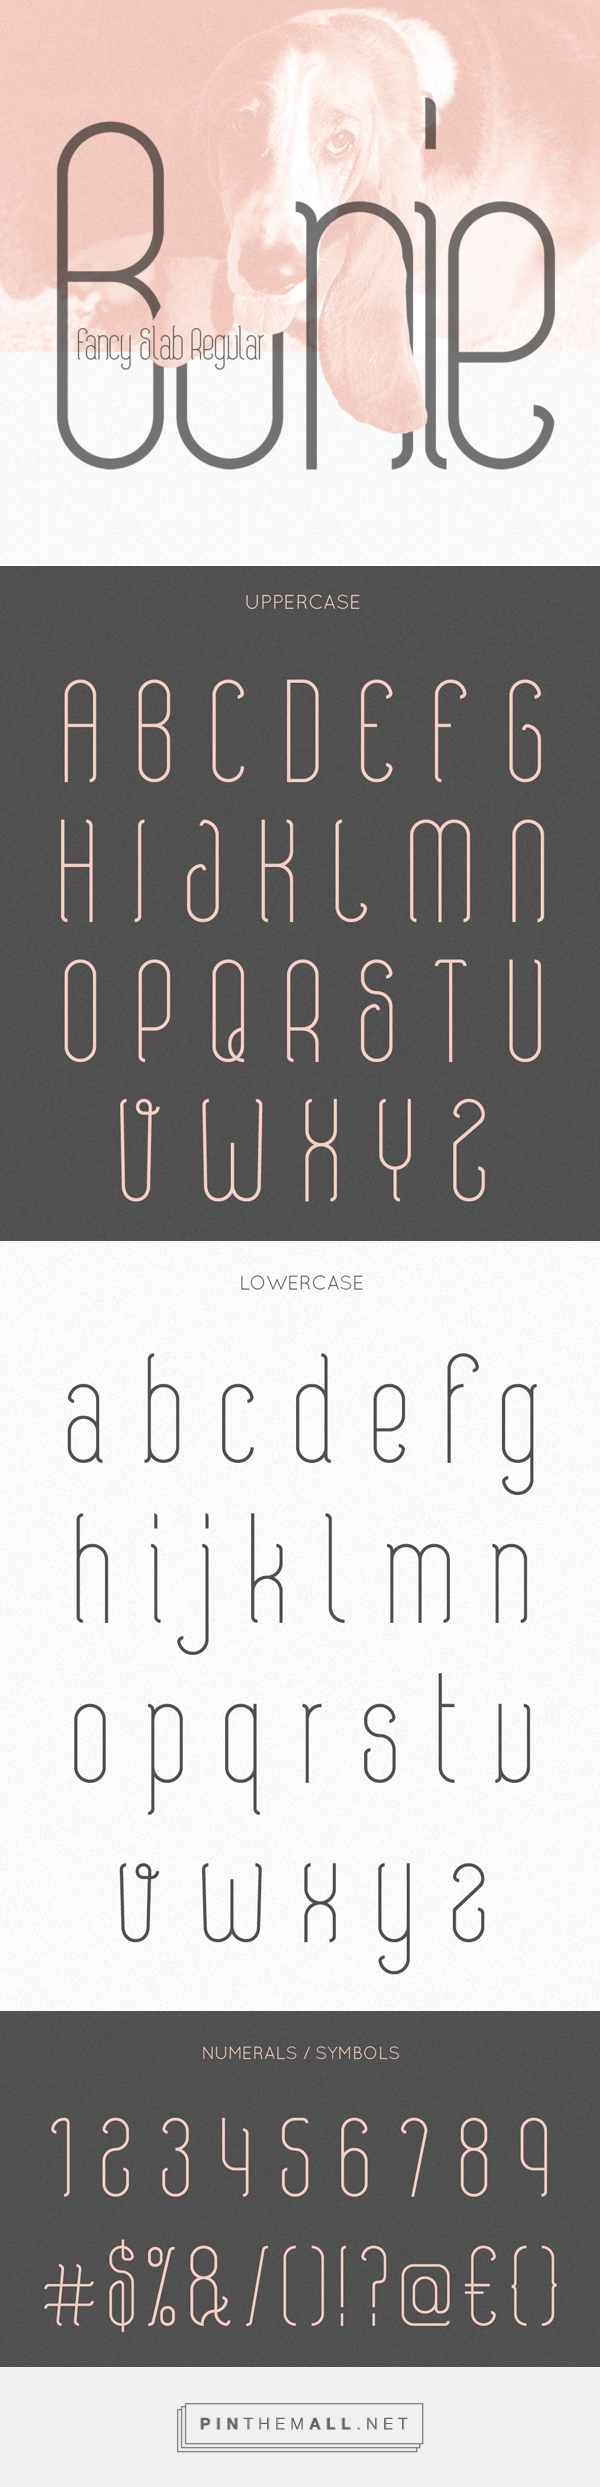 New Functional Free Fonts for Designers | Bonie Free Font | Graphic Design Junction - created via https://pinthemall.net